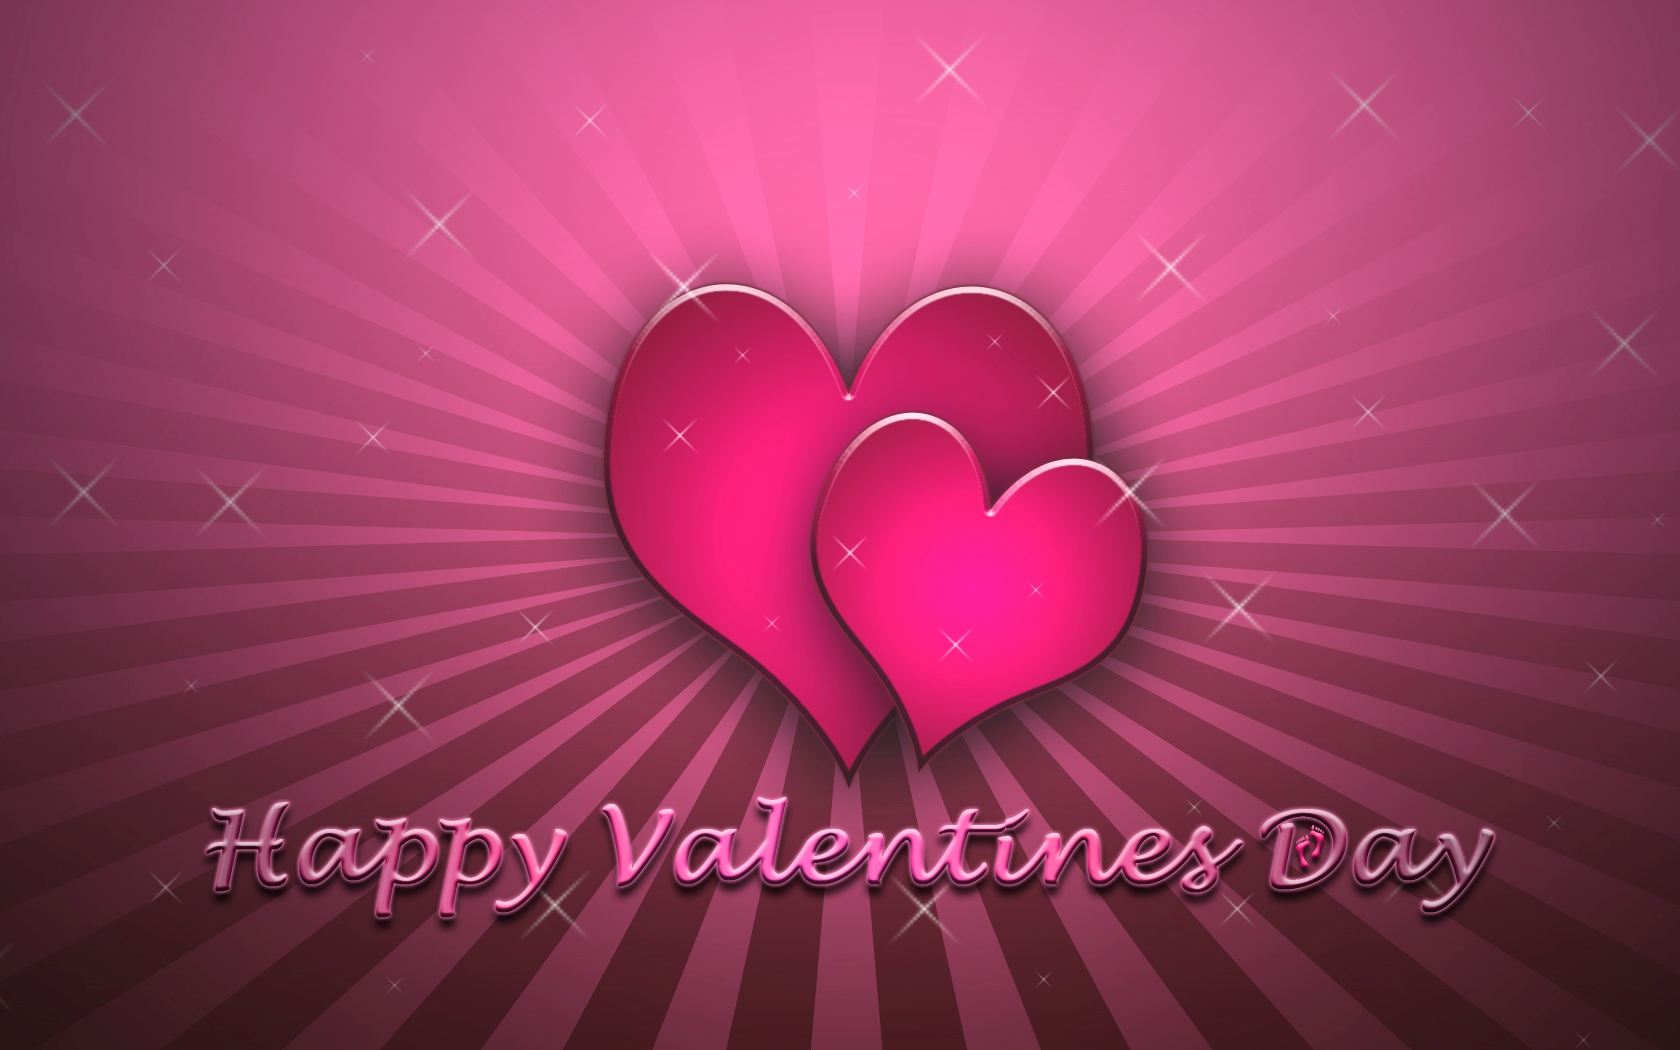 download valentine day wallpaper desktop which is under the valentines 1680x1050